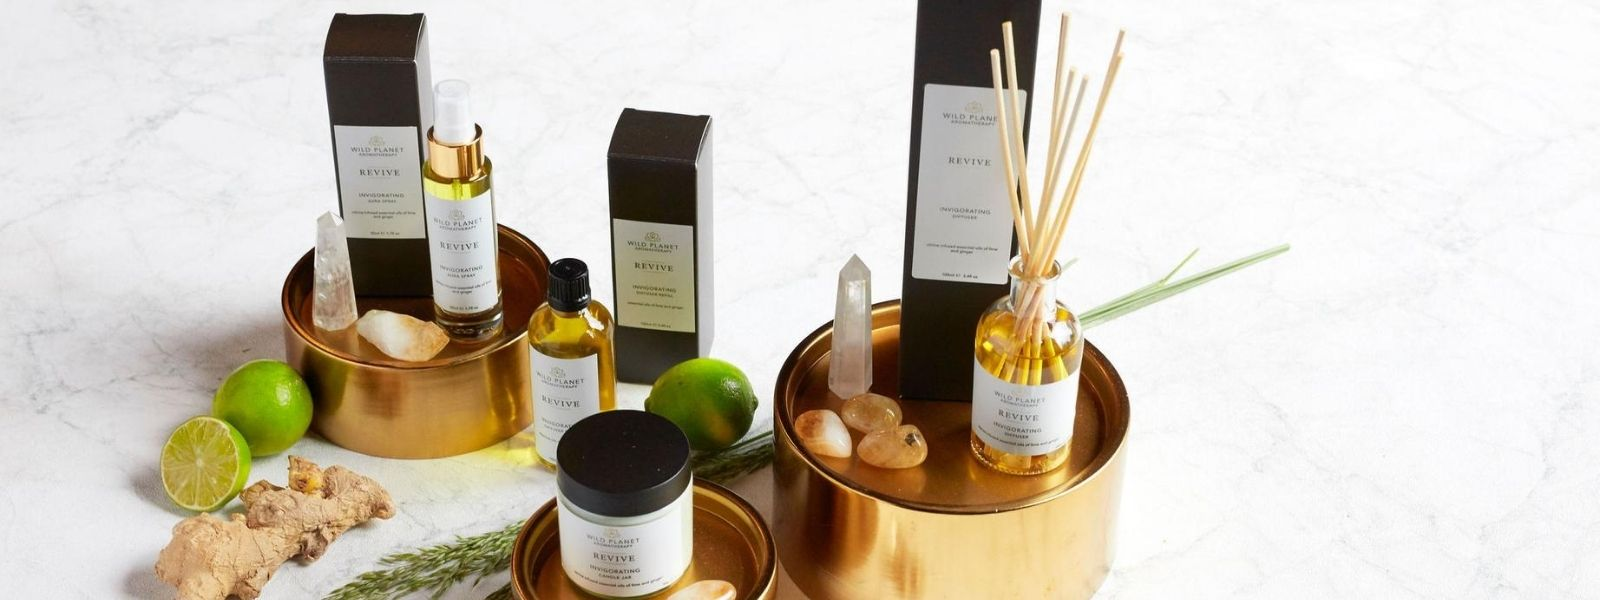 Revive Collection of home fragrances with Citrine crystals showing Reed Diffuser, Candle Jar, Diffuser Refill and room spray next to limes, citrine crystals on gold pedestals on light grey marble background